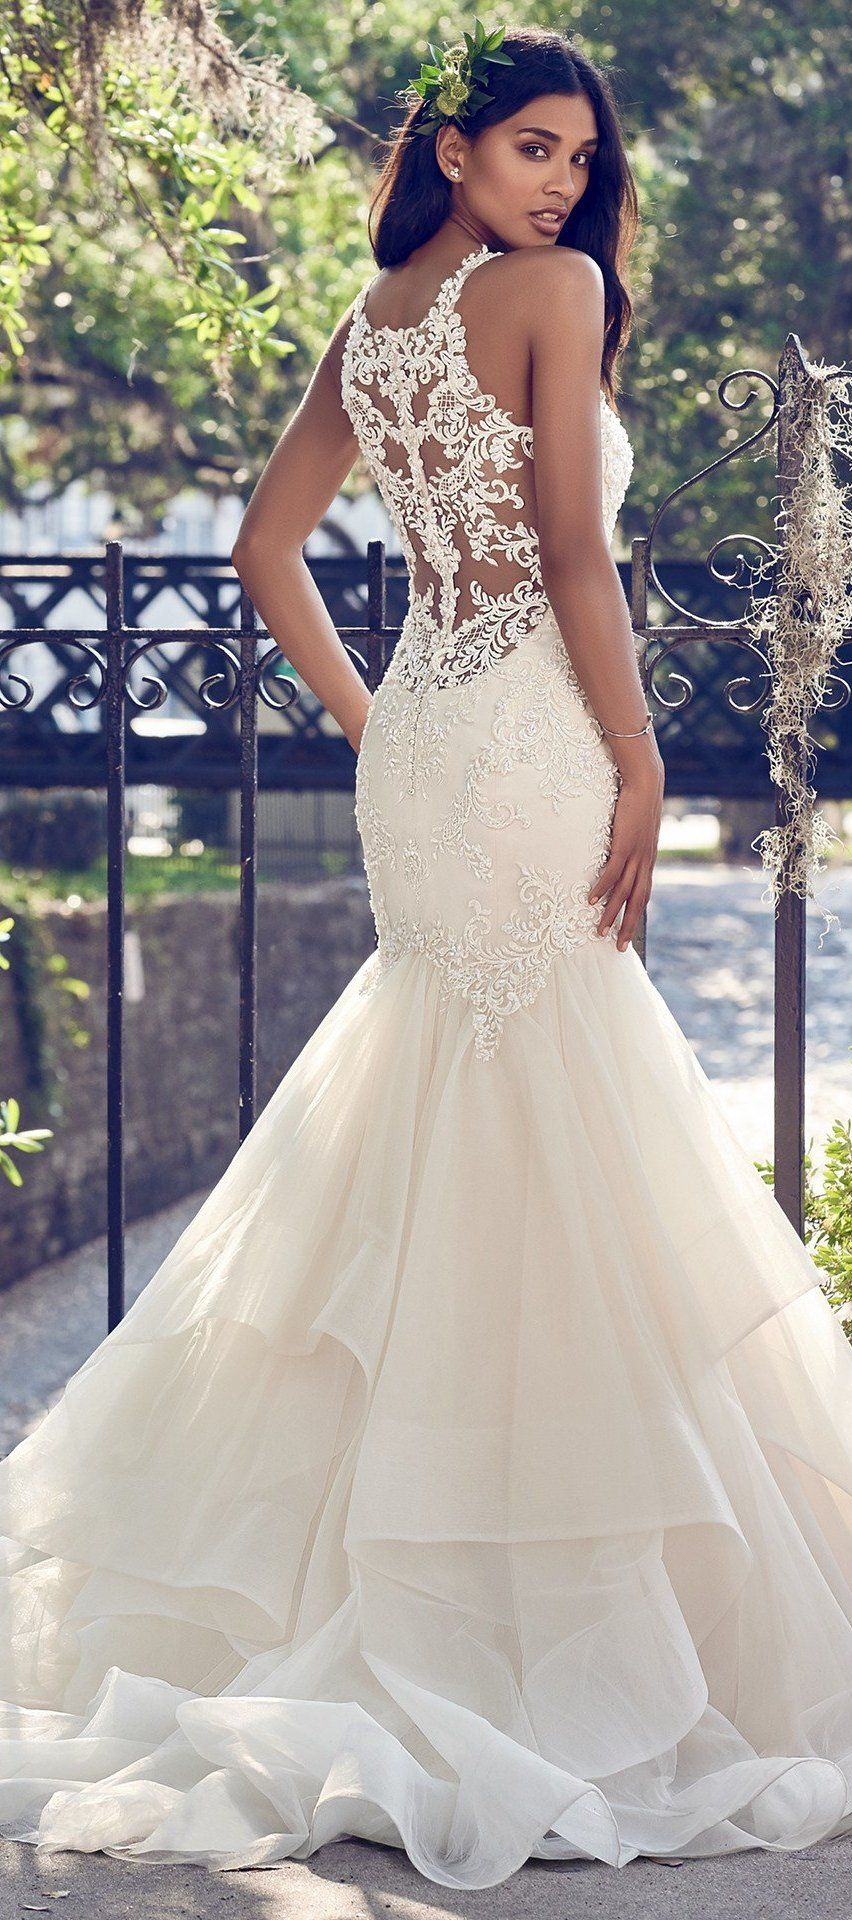 a51d62ddba92 ... Beaded lace motifs and Swarovski crystals adorn the bodice, illusion  back, and halter neckline with illusion plunging V in this wedding dress. A  tiered ...